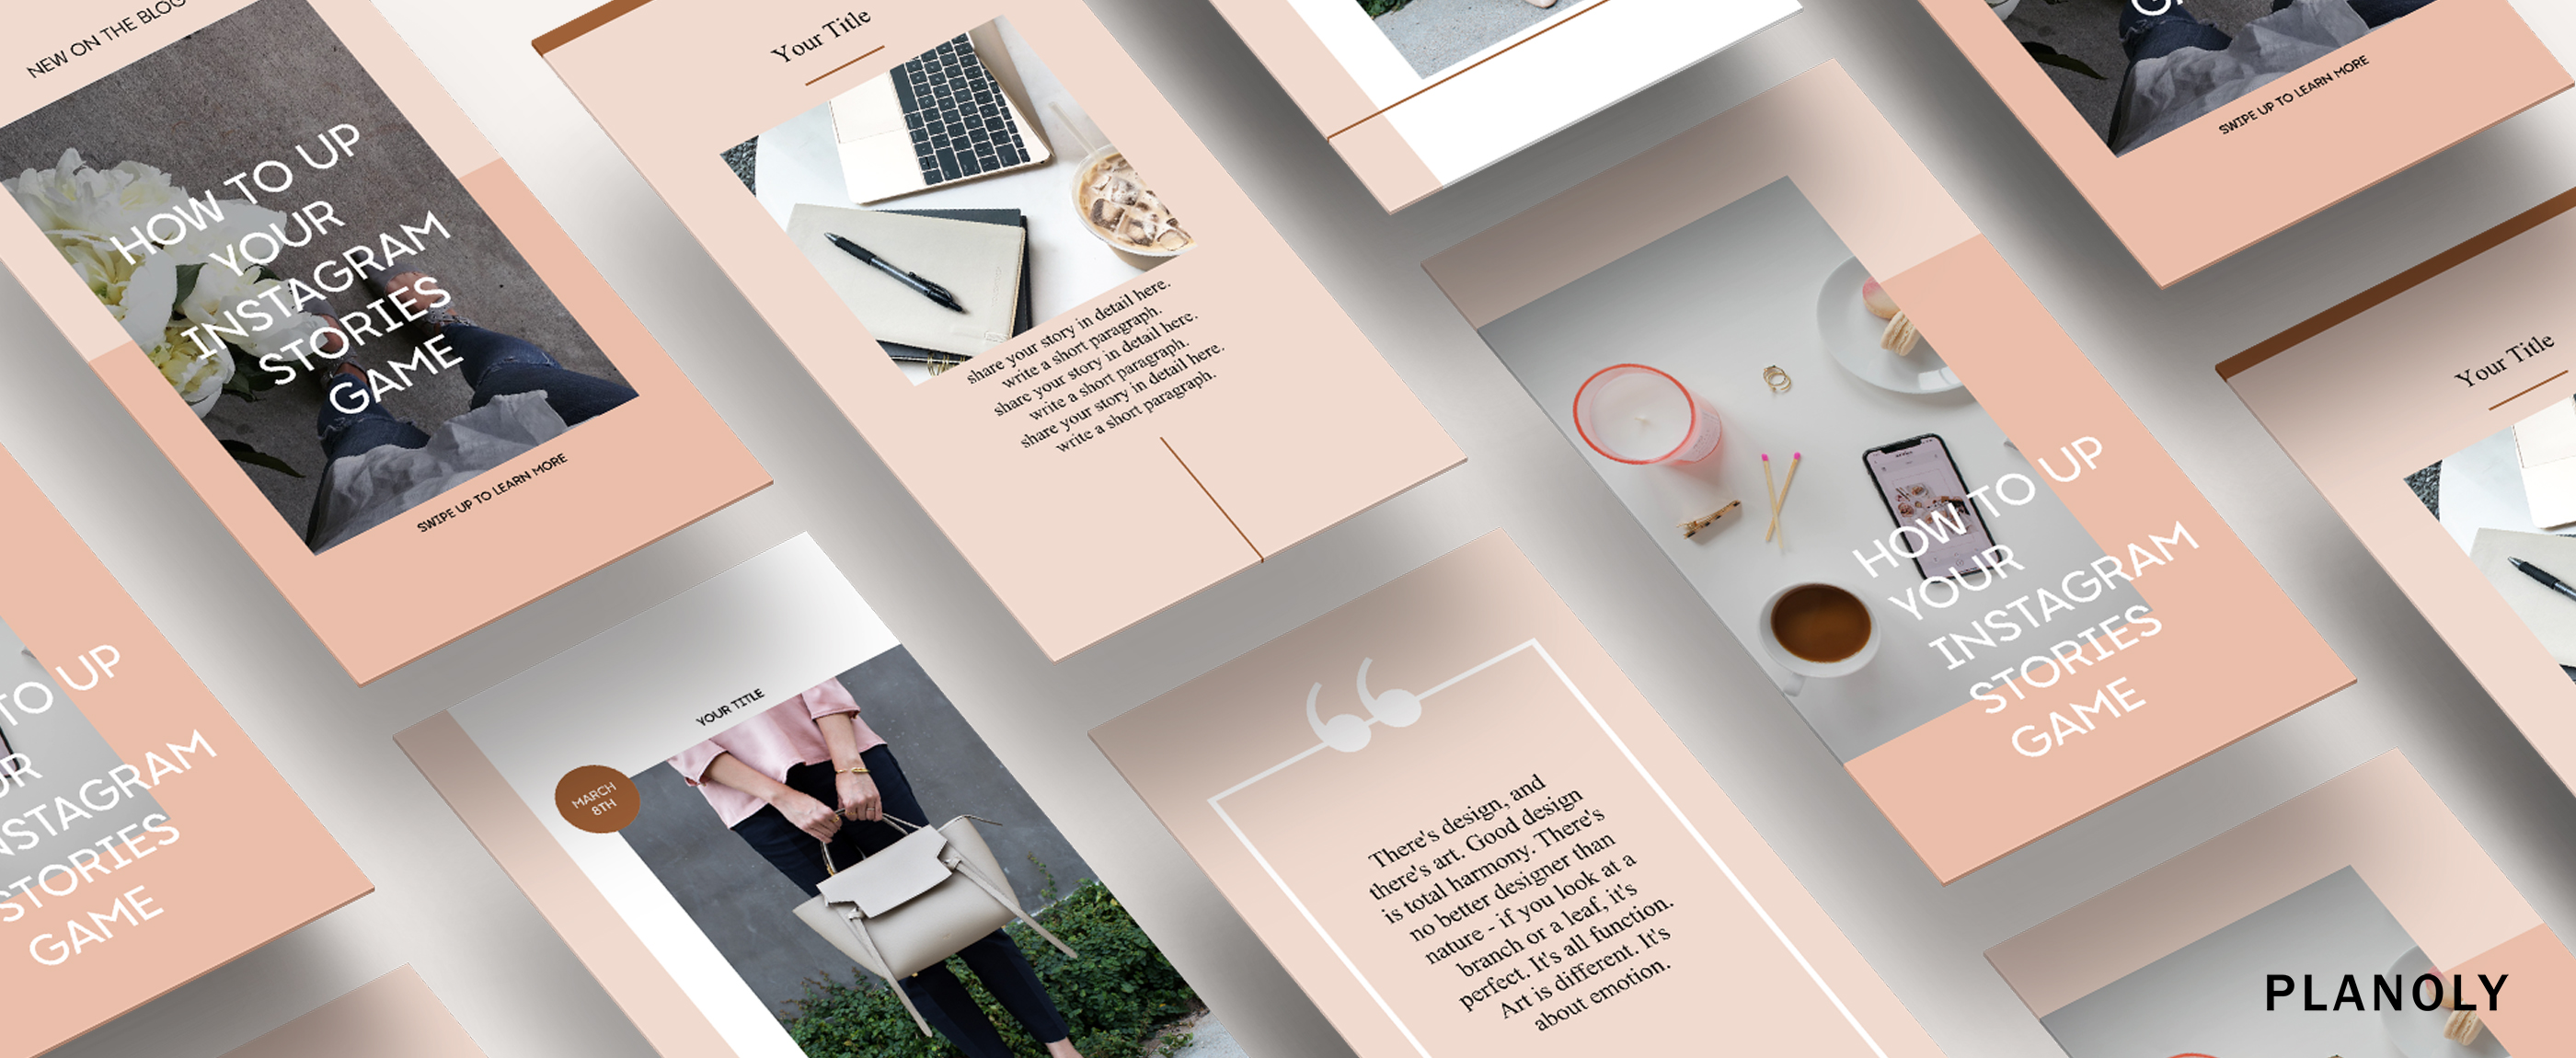 Planoly-Blog-Post-Stories-Edit-Set-1-Banner-2